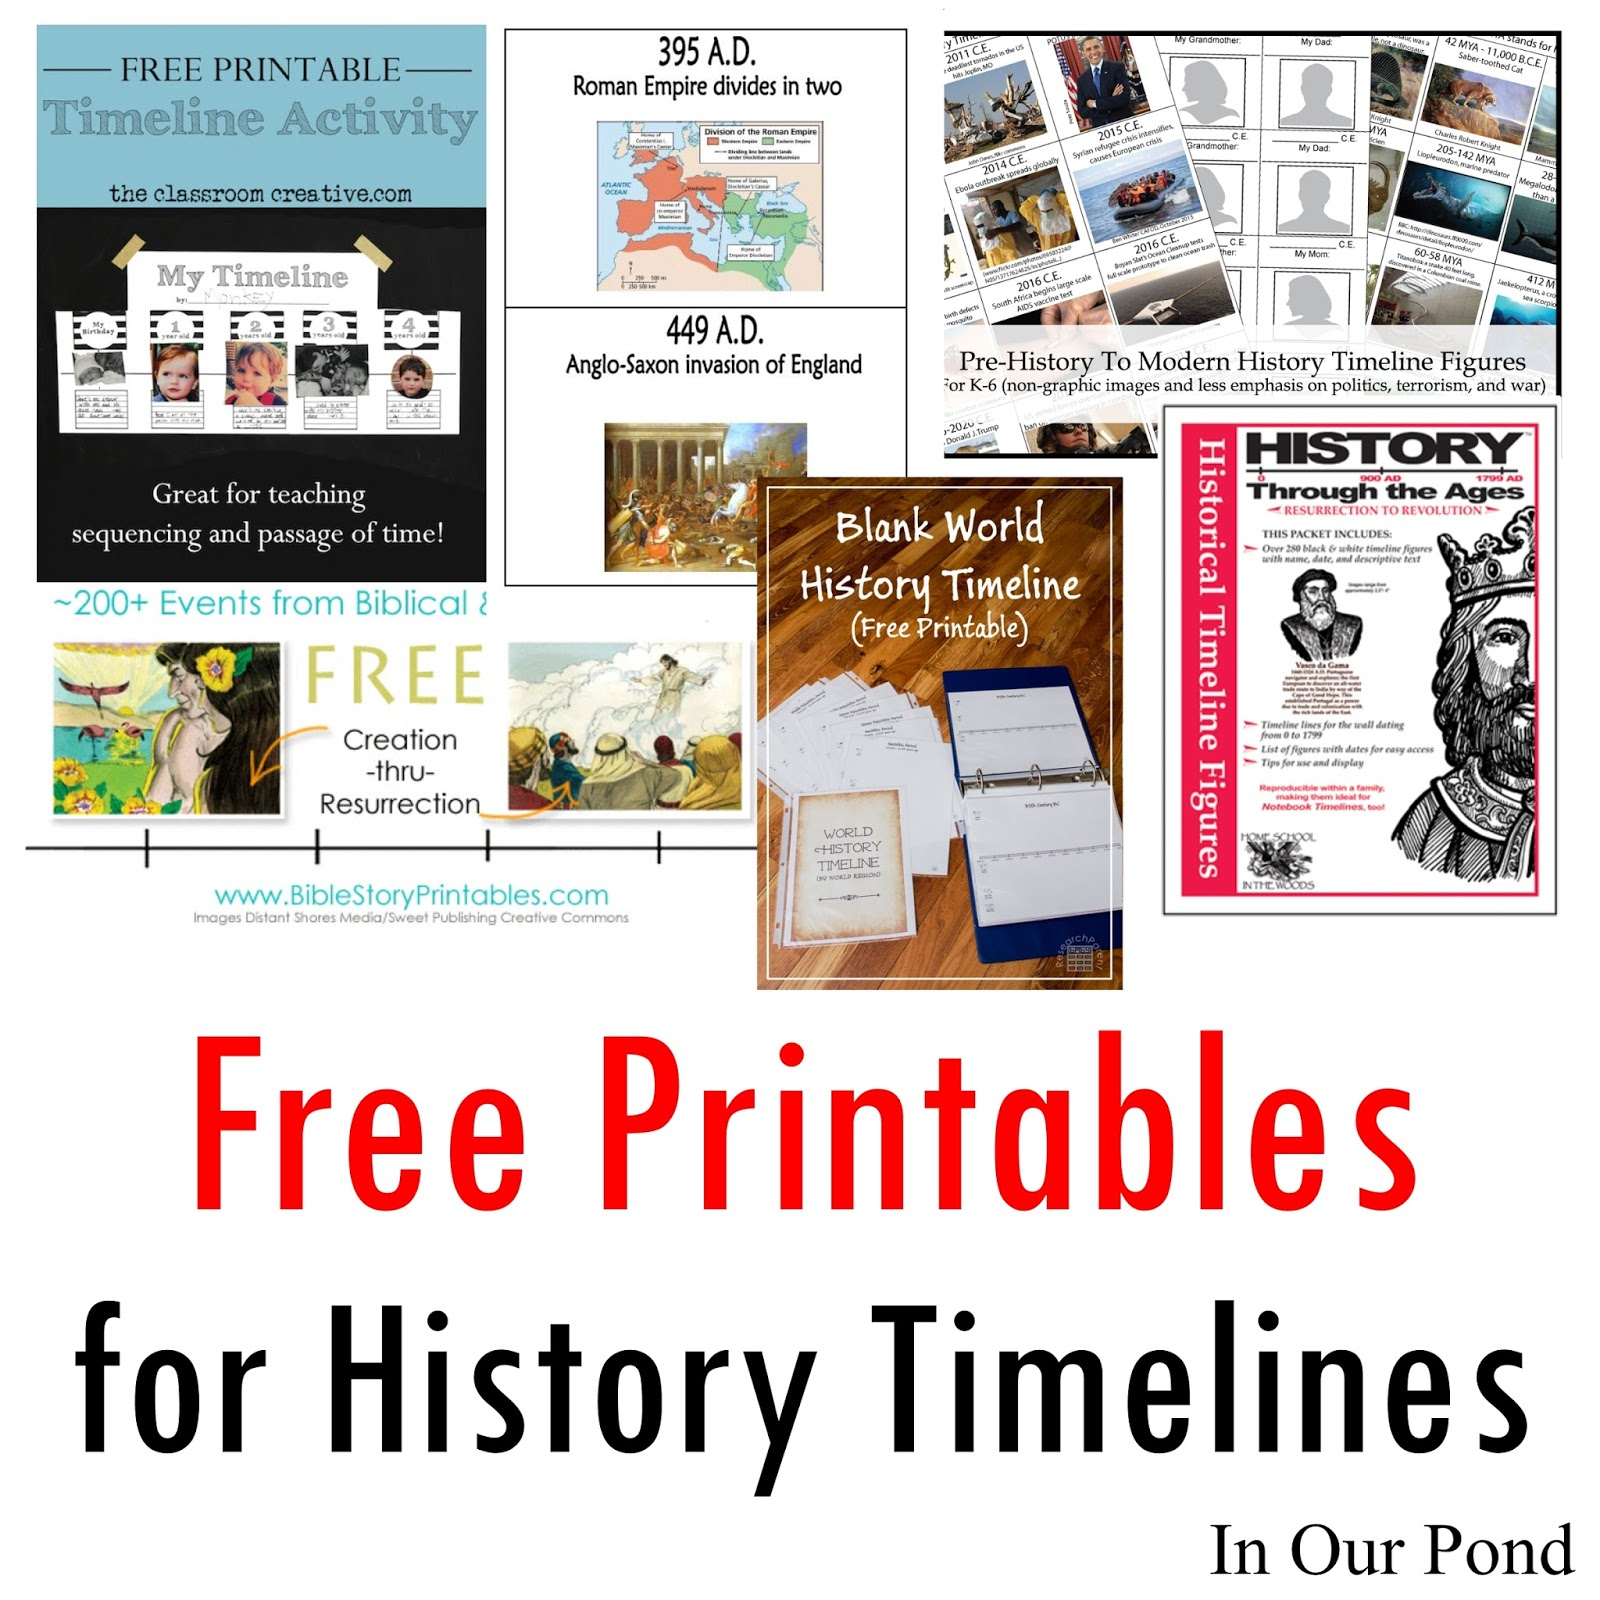 Free Printables For History Timelines - In Our Pond - Free Printable Timeline Figures